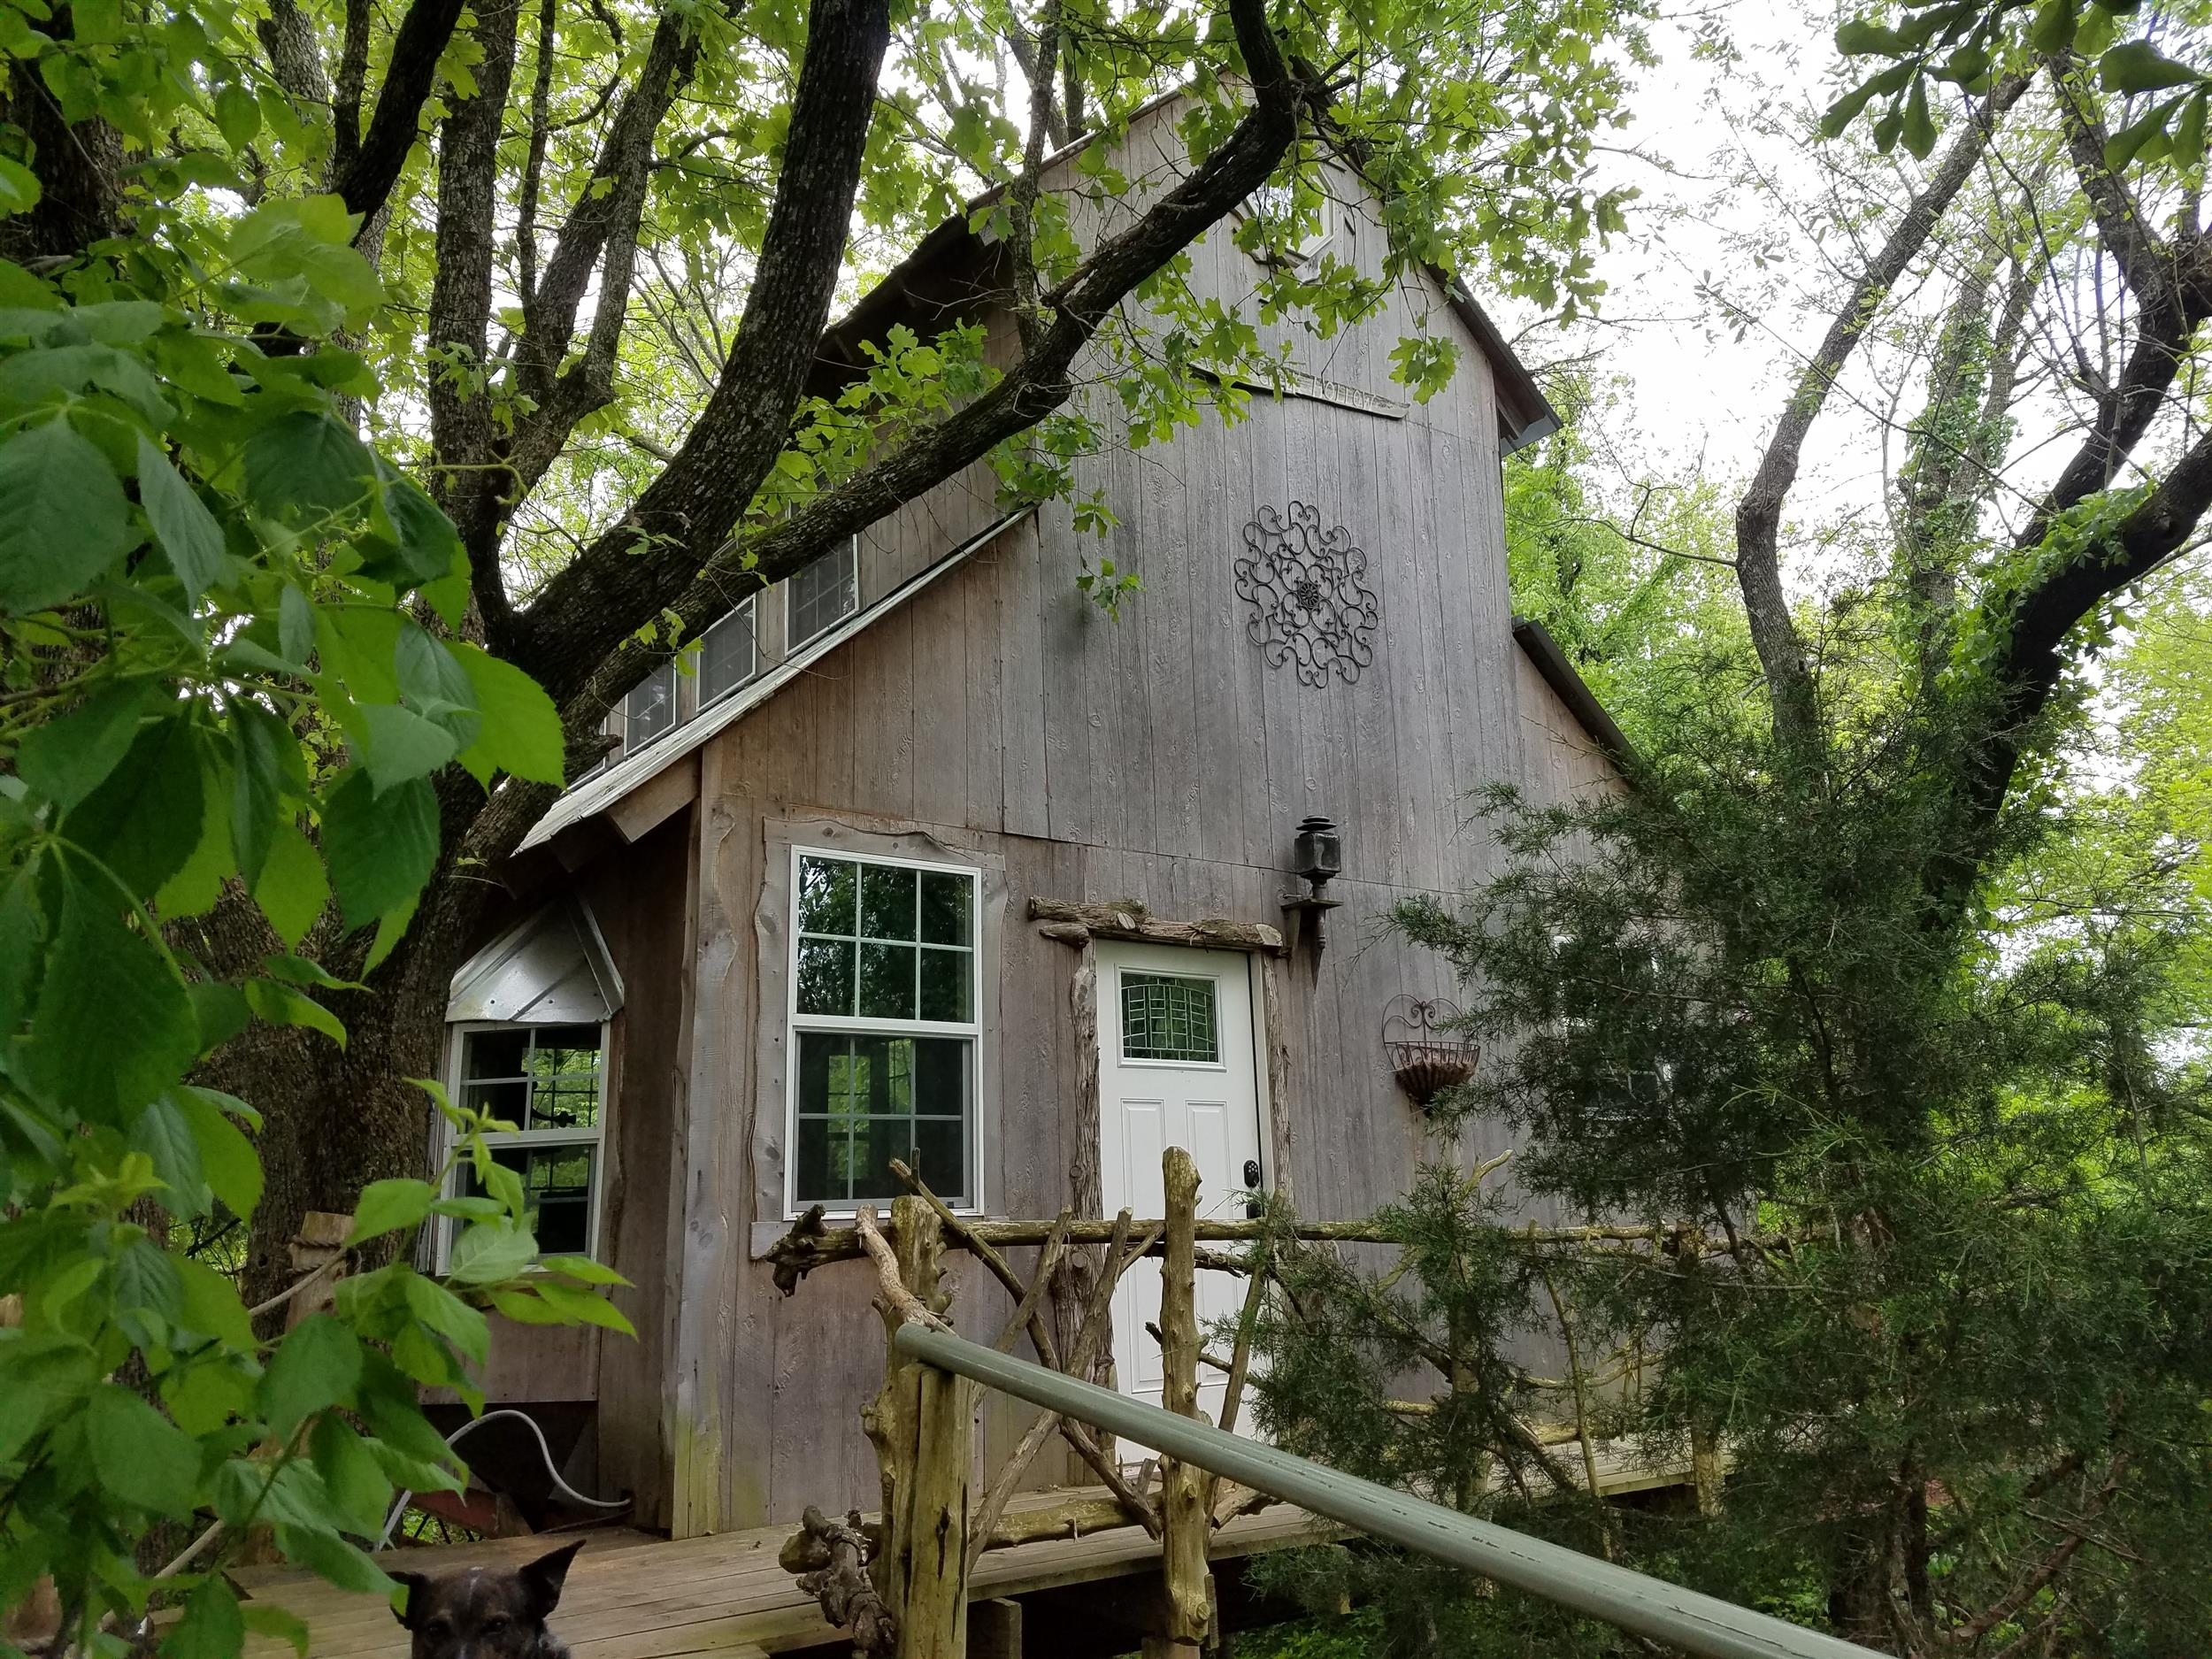 Bare Creek Hollow Treehouse